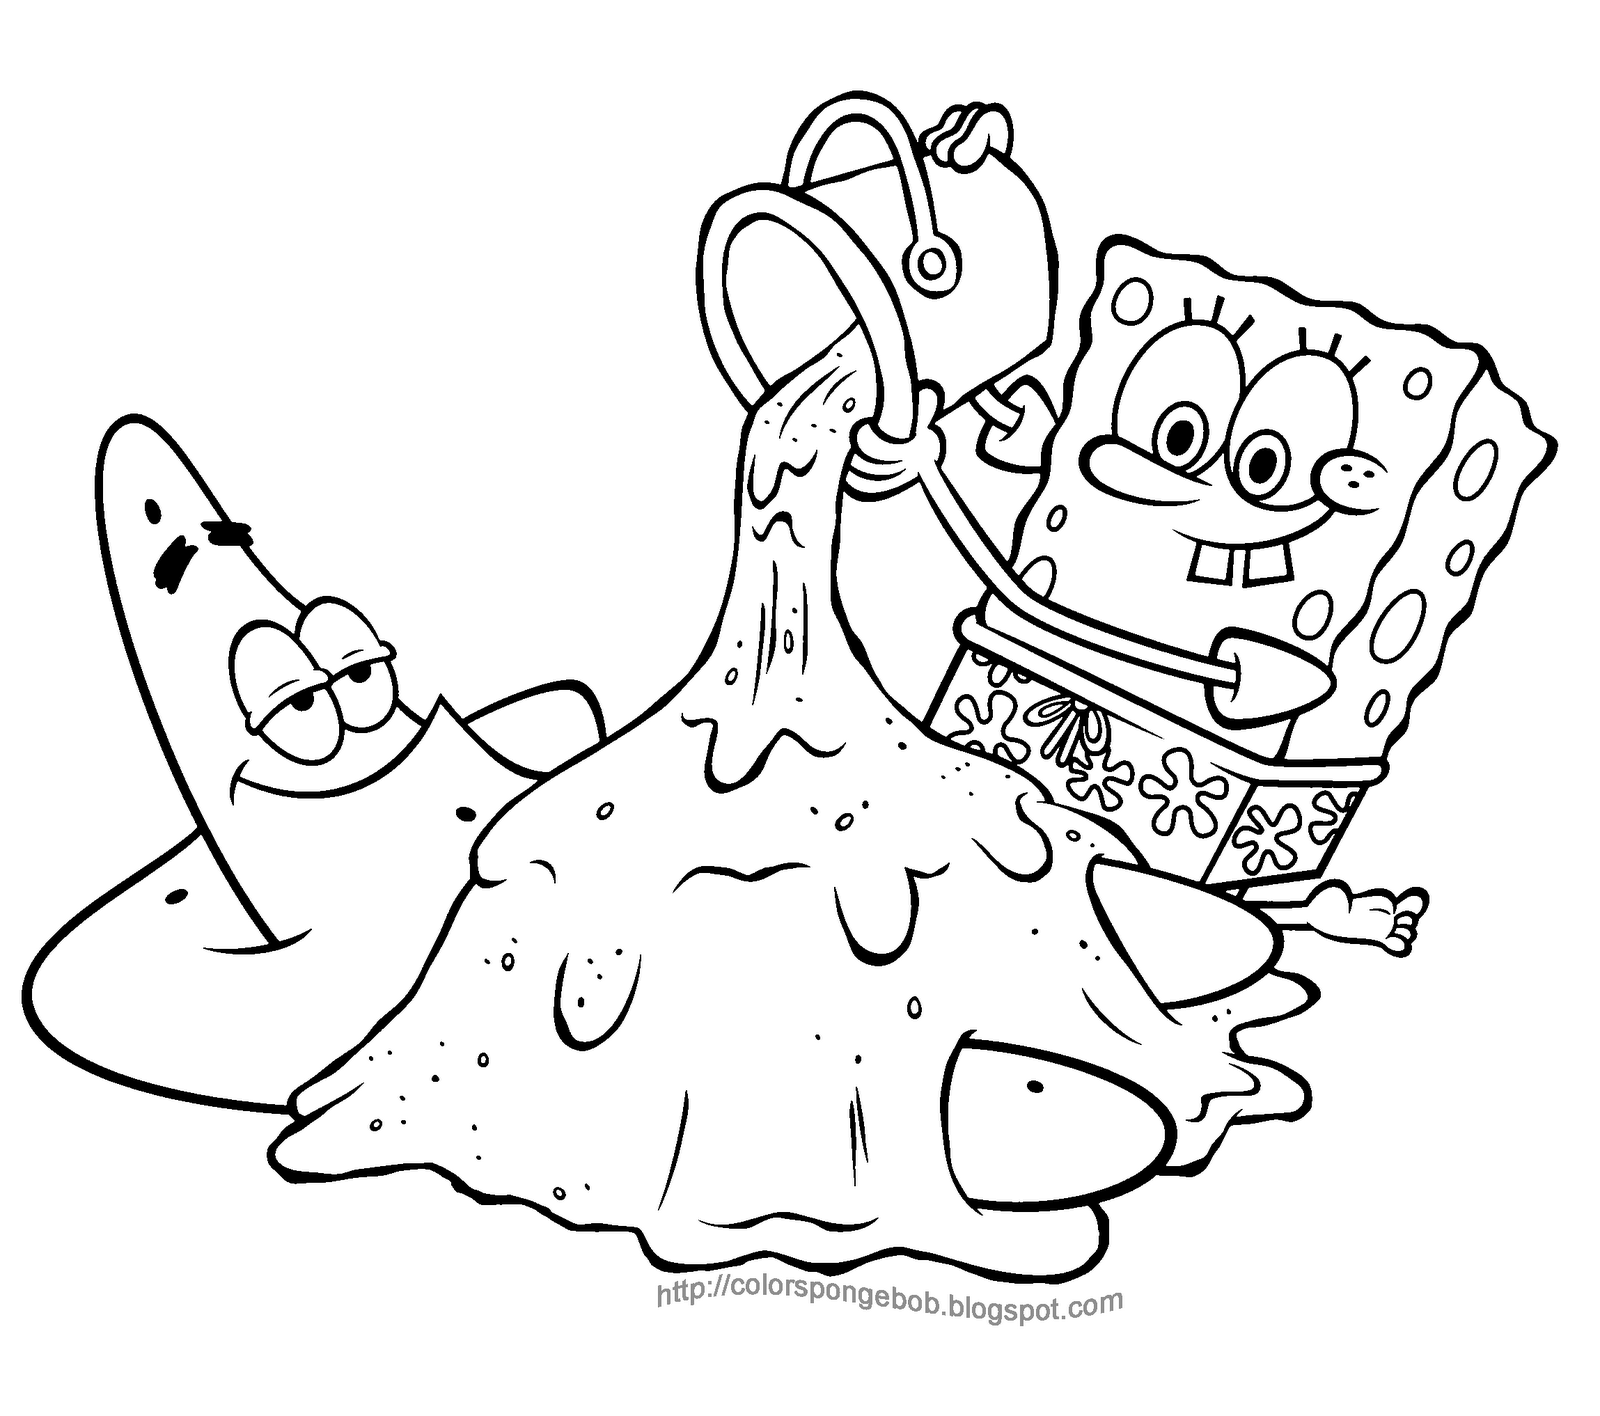 1600x1416 Best Of Lazy Patrick In Spongebob Printable S Bf E Coloring Pages